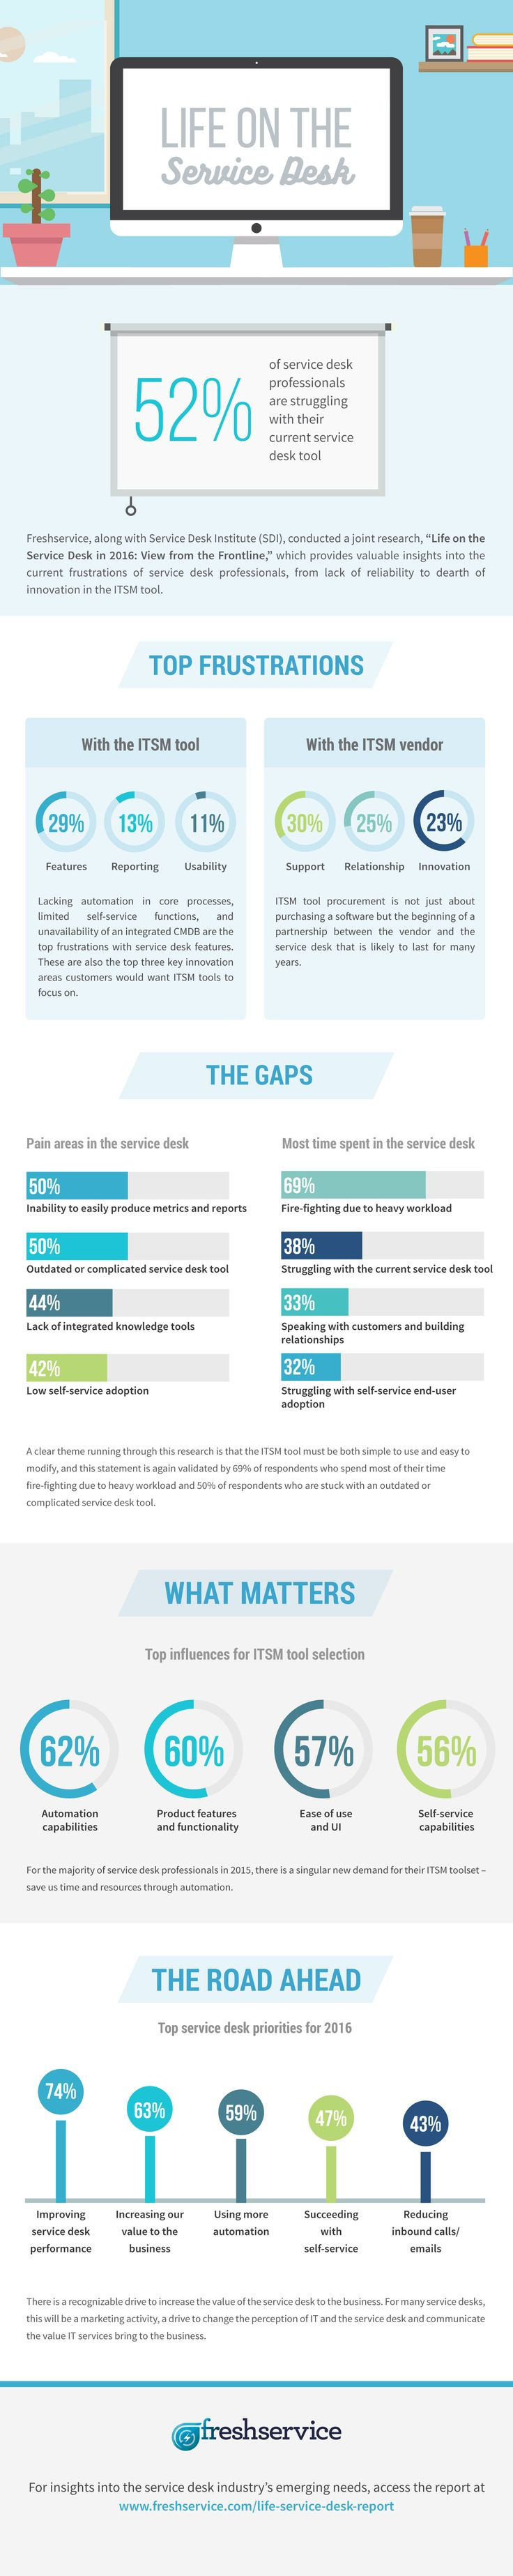 Top Service Desk Challenges And How To Tackle Them An Infographic By Freshservice This